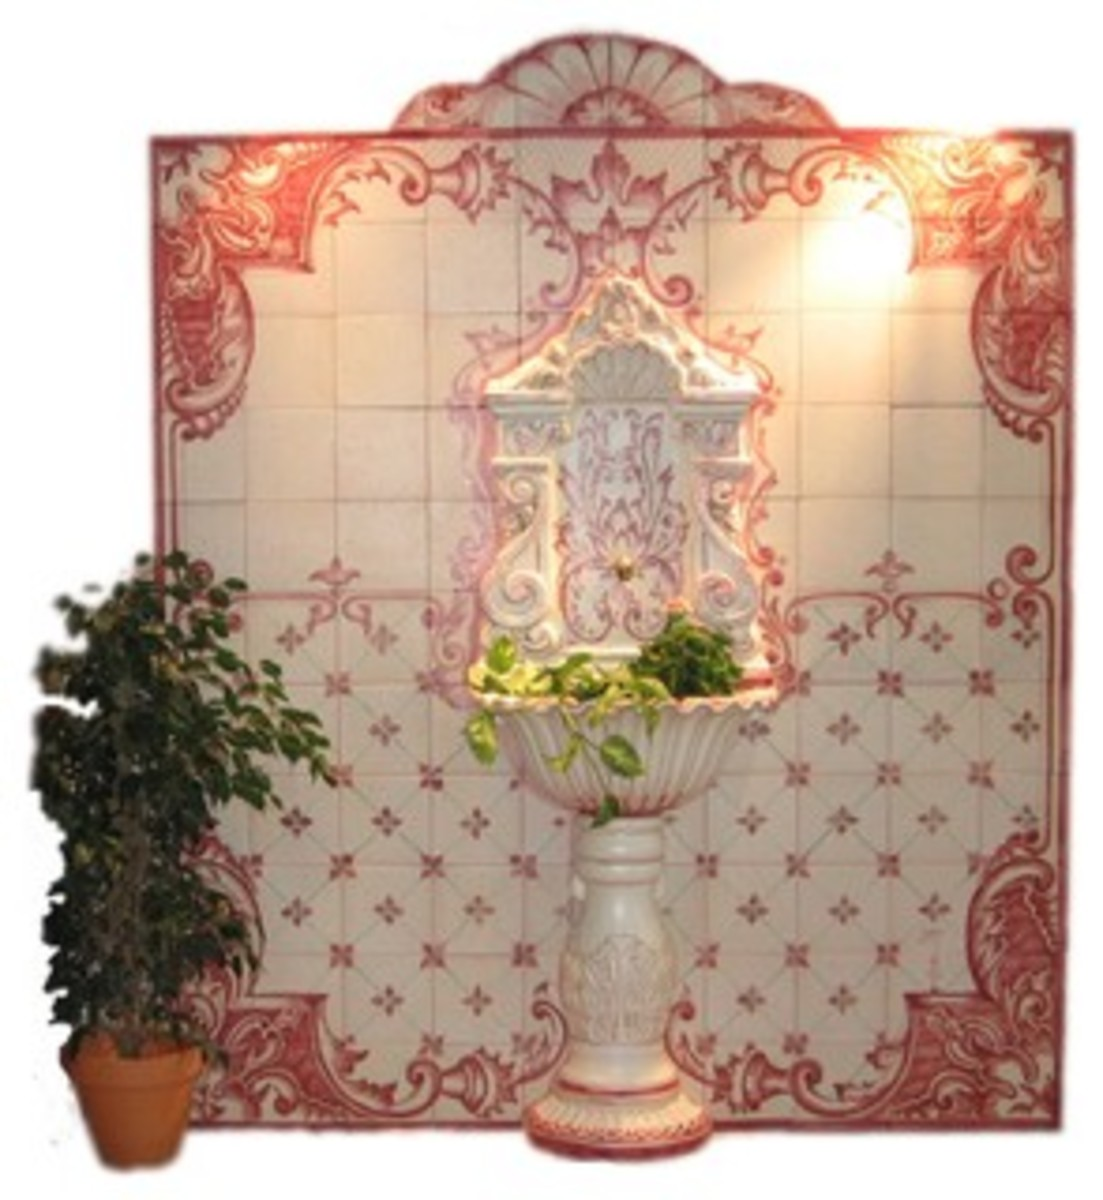 pink and water tile are the backdrop for this Mediterranean style water fountain